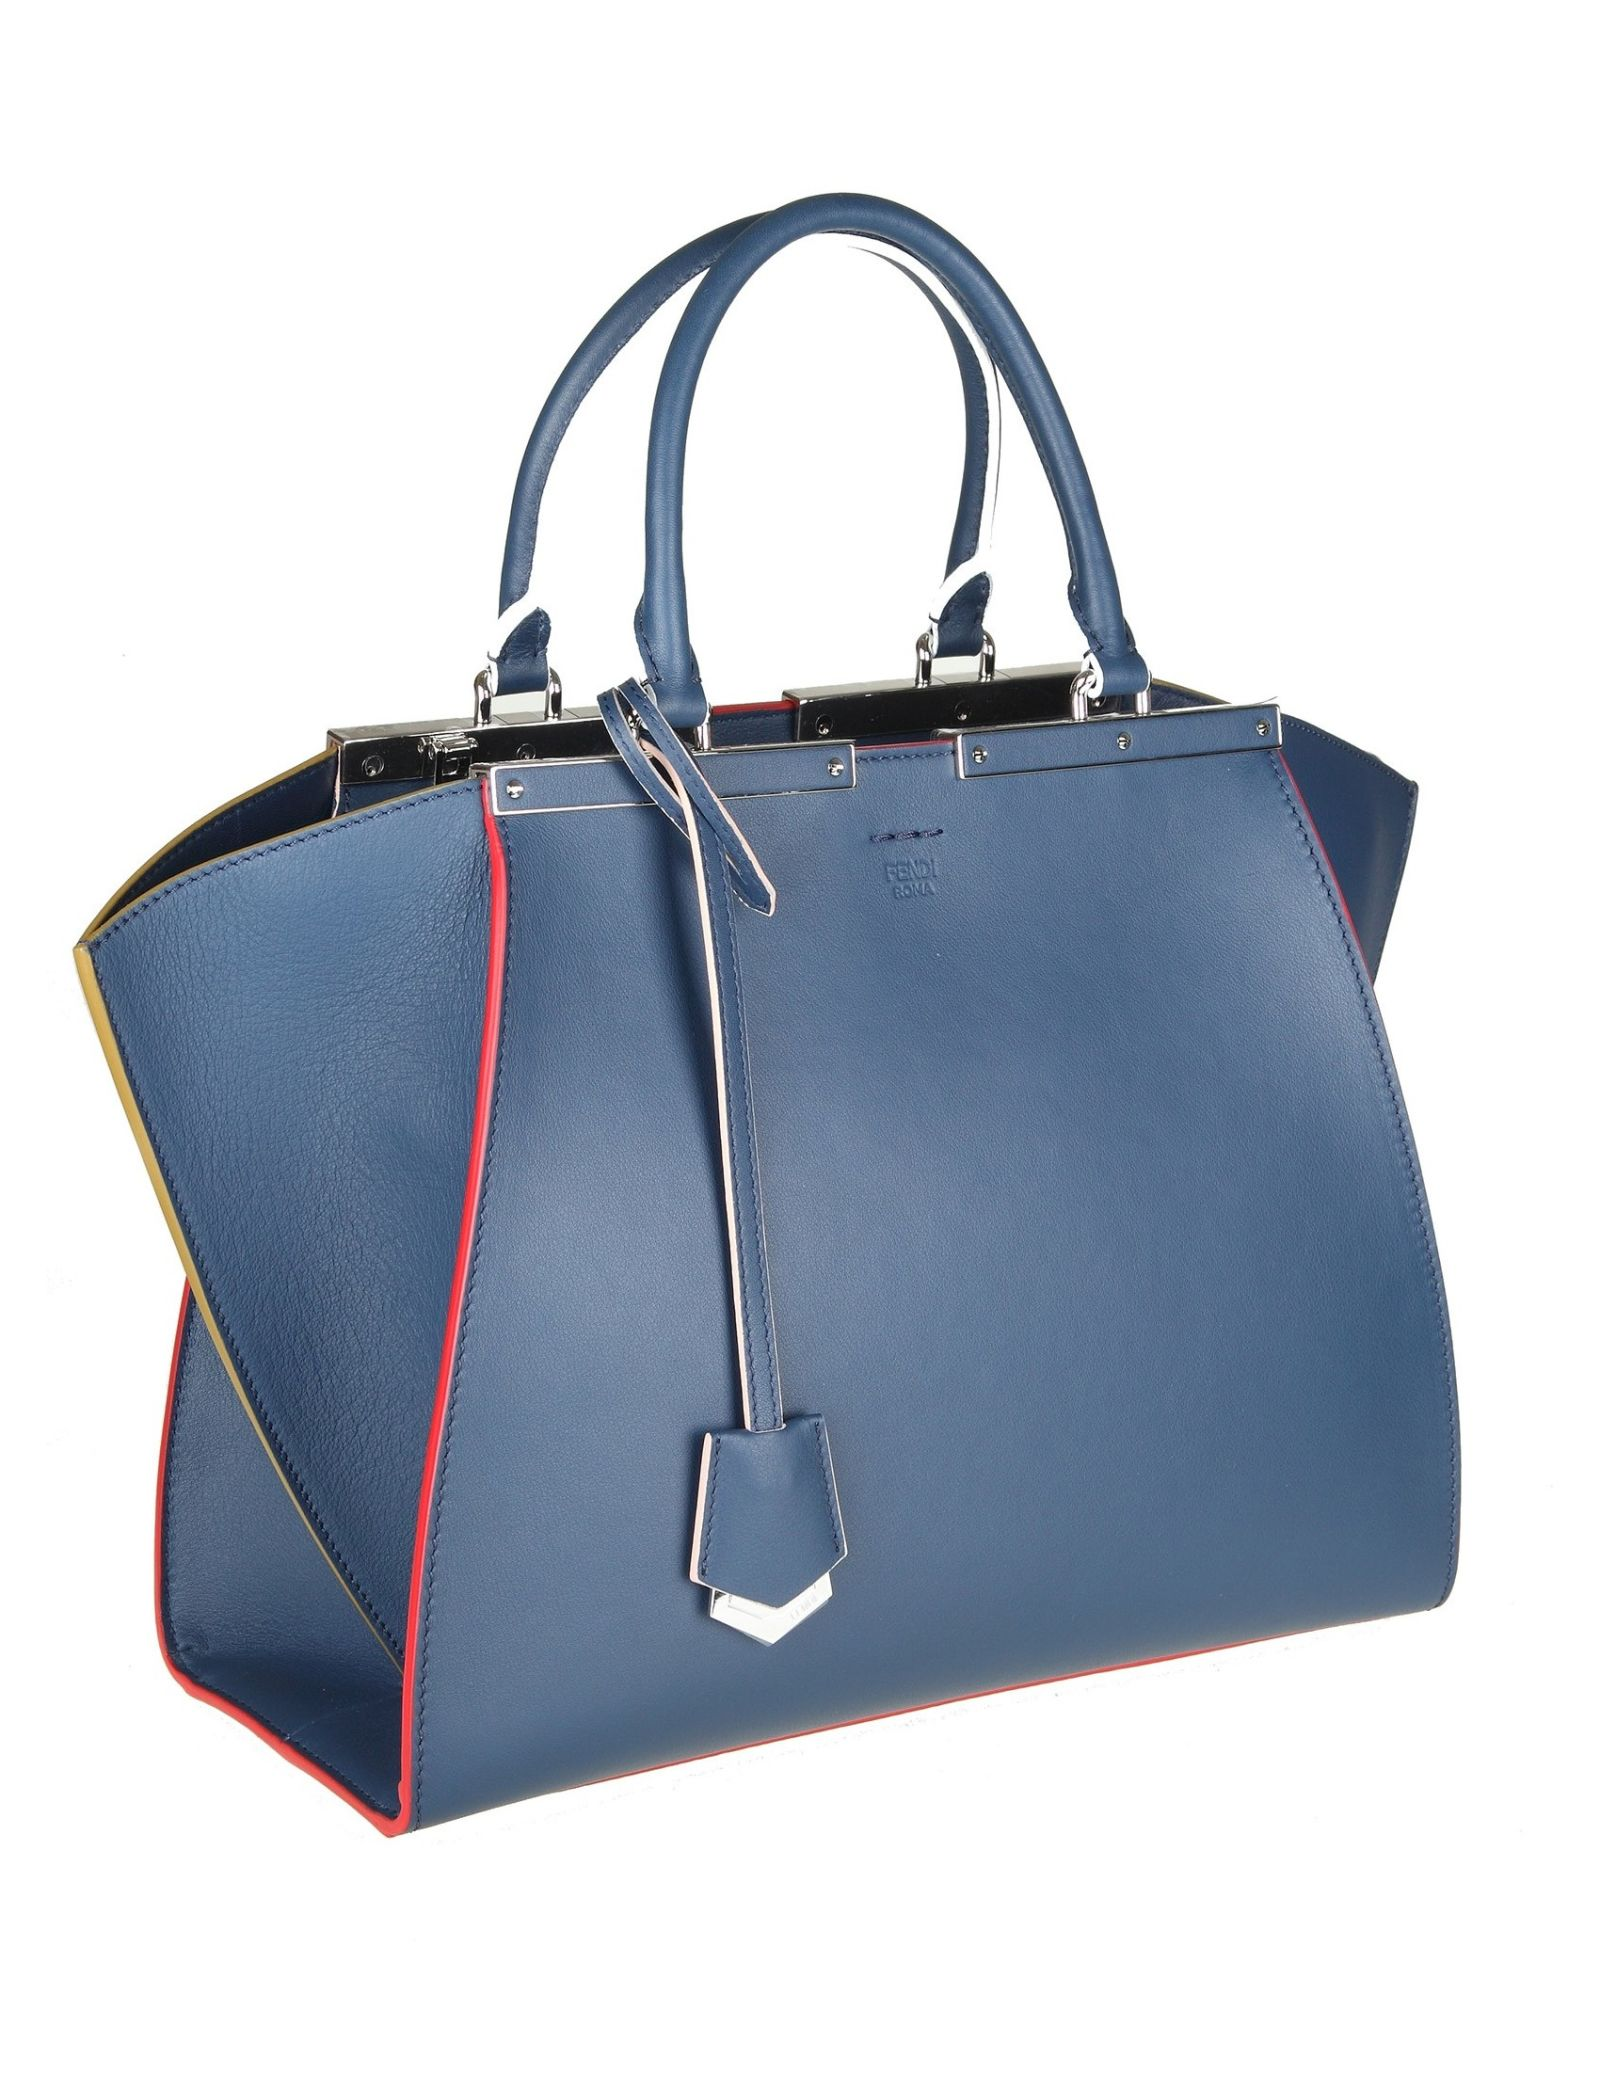 422d793ca8 ... Fendi 3jour Shopping In Skin Color Blue - BLUE ...